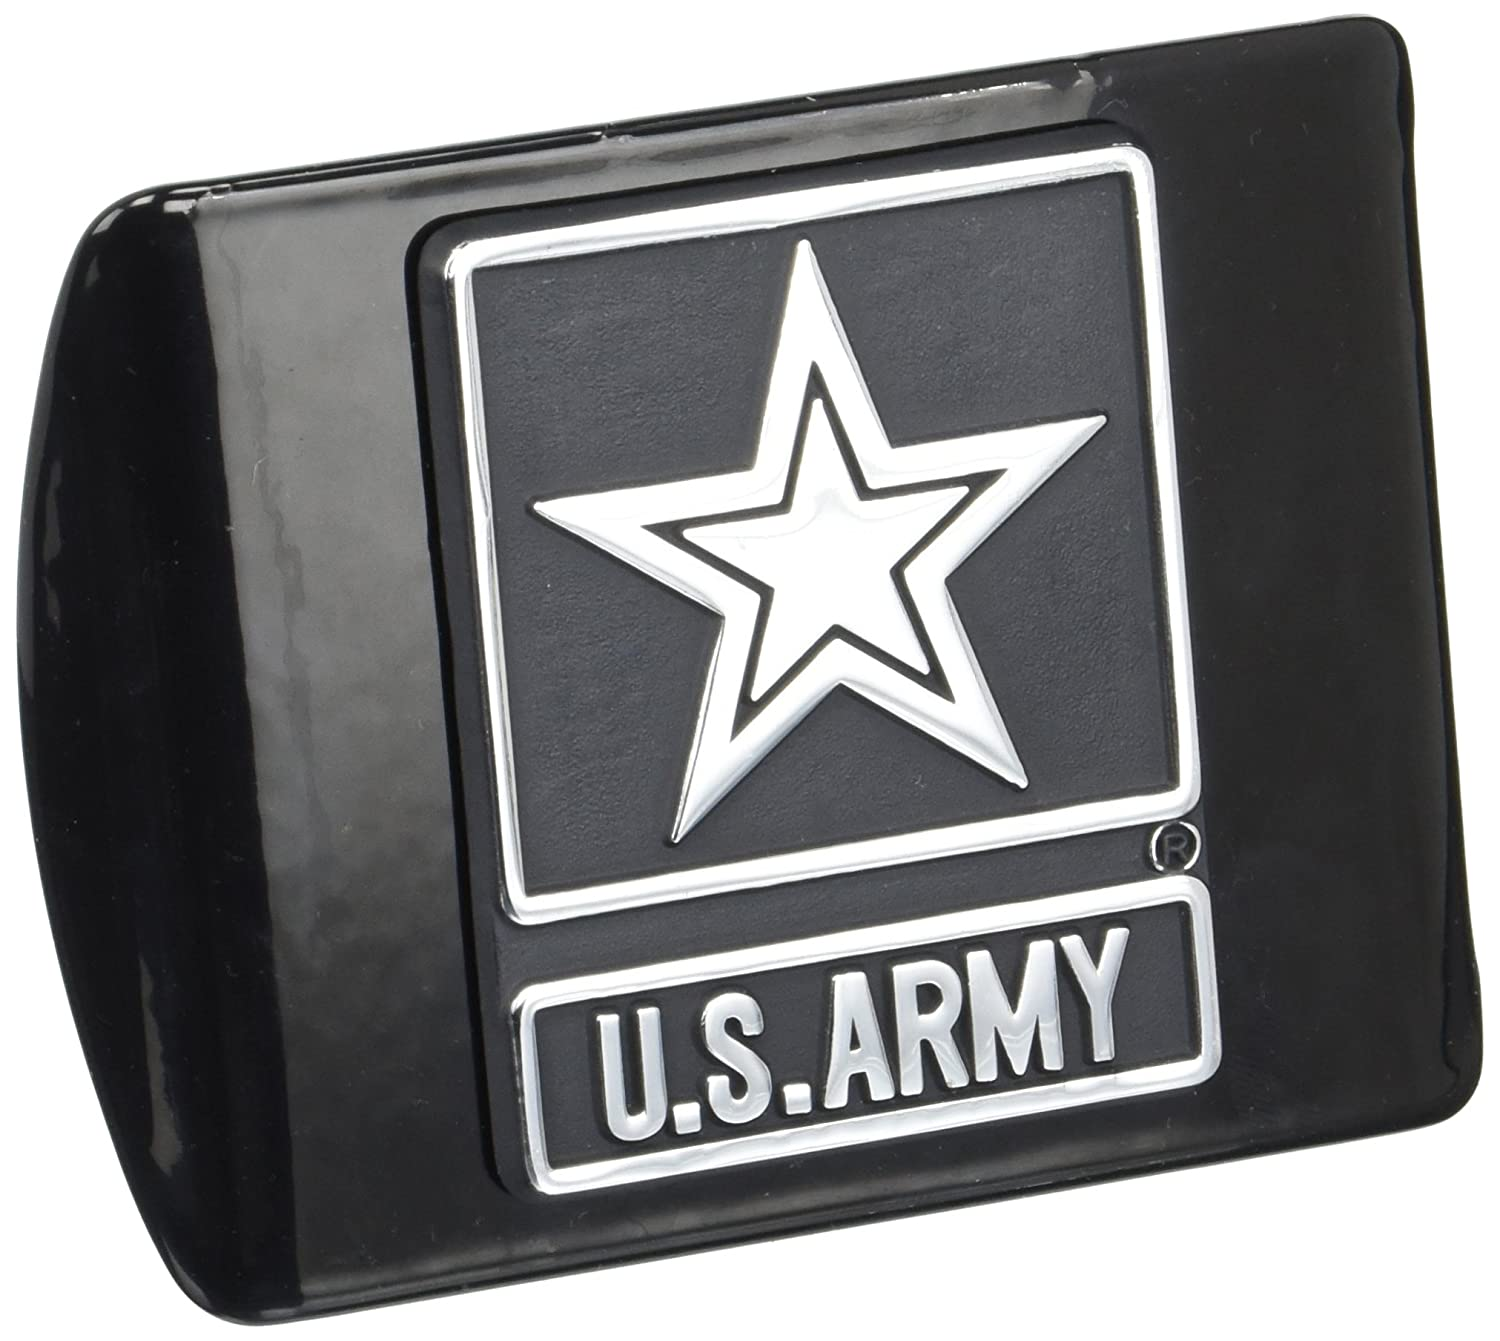 2 Custom Hitch Covers 12509-Chrome Texas Hitch Cover